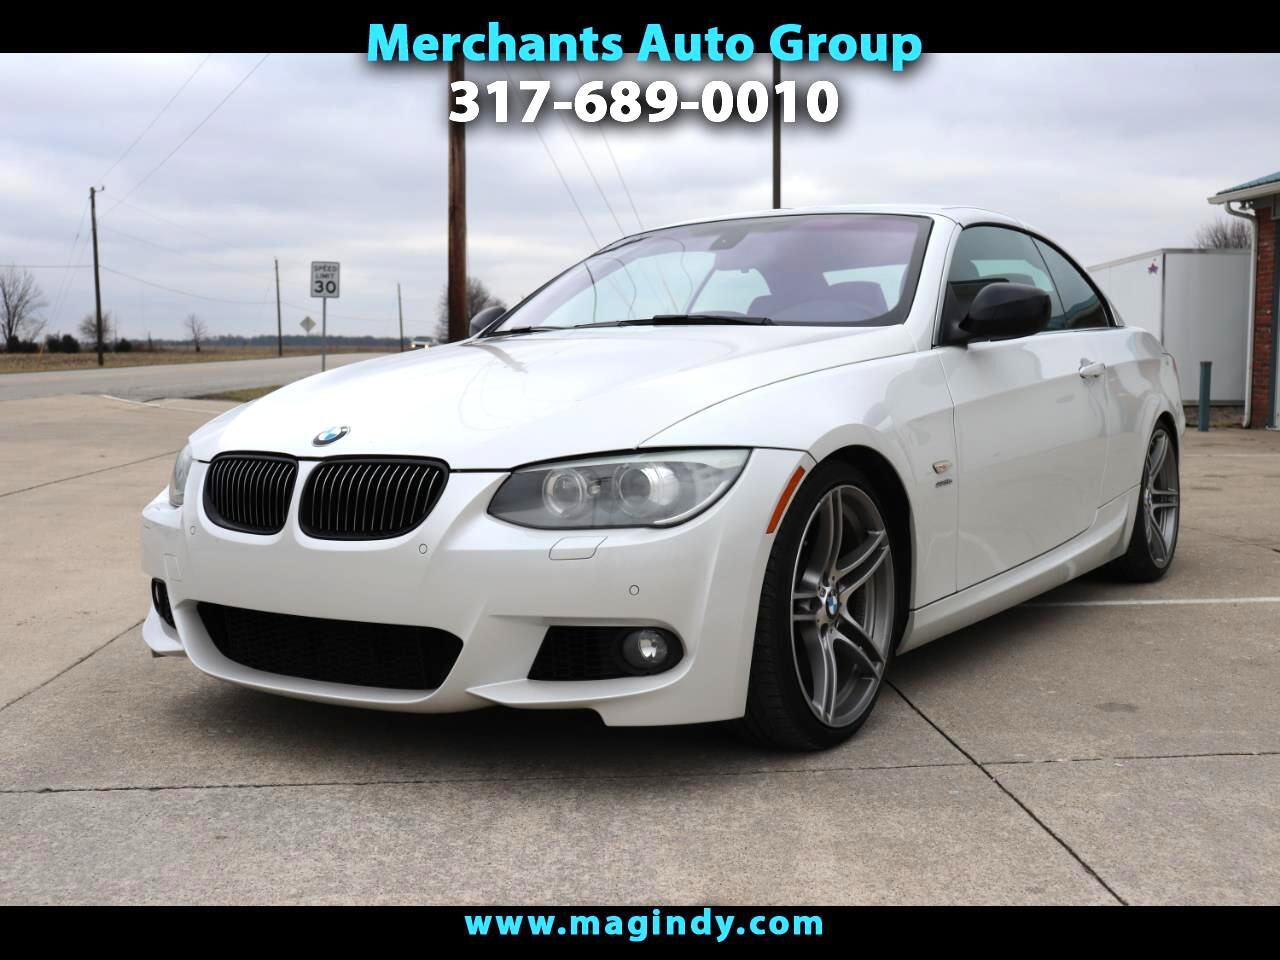 BMW 3-Series 335i Convertible - SULEV 2012